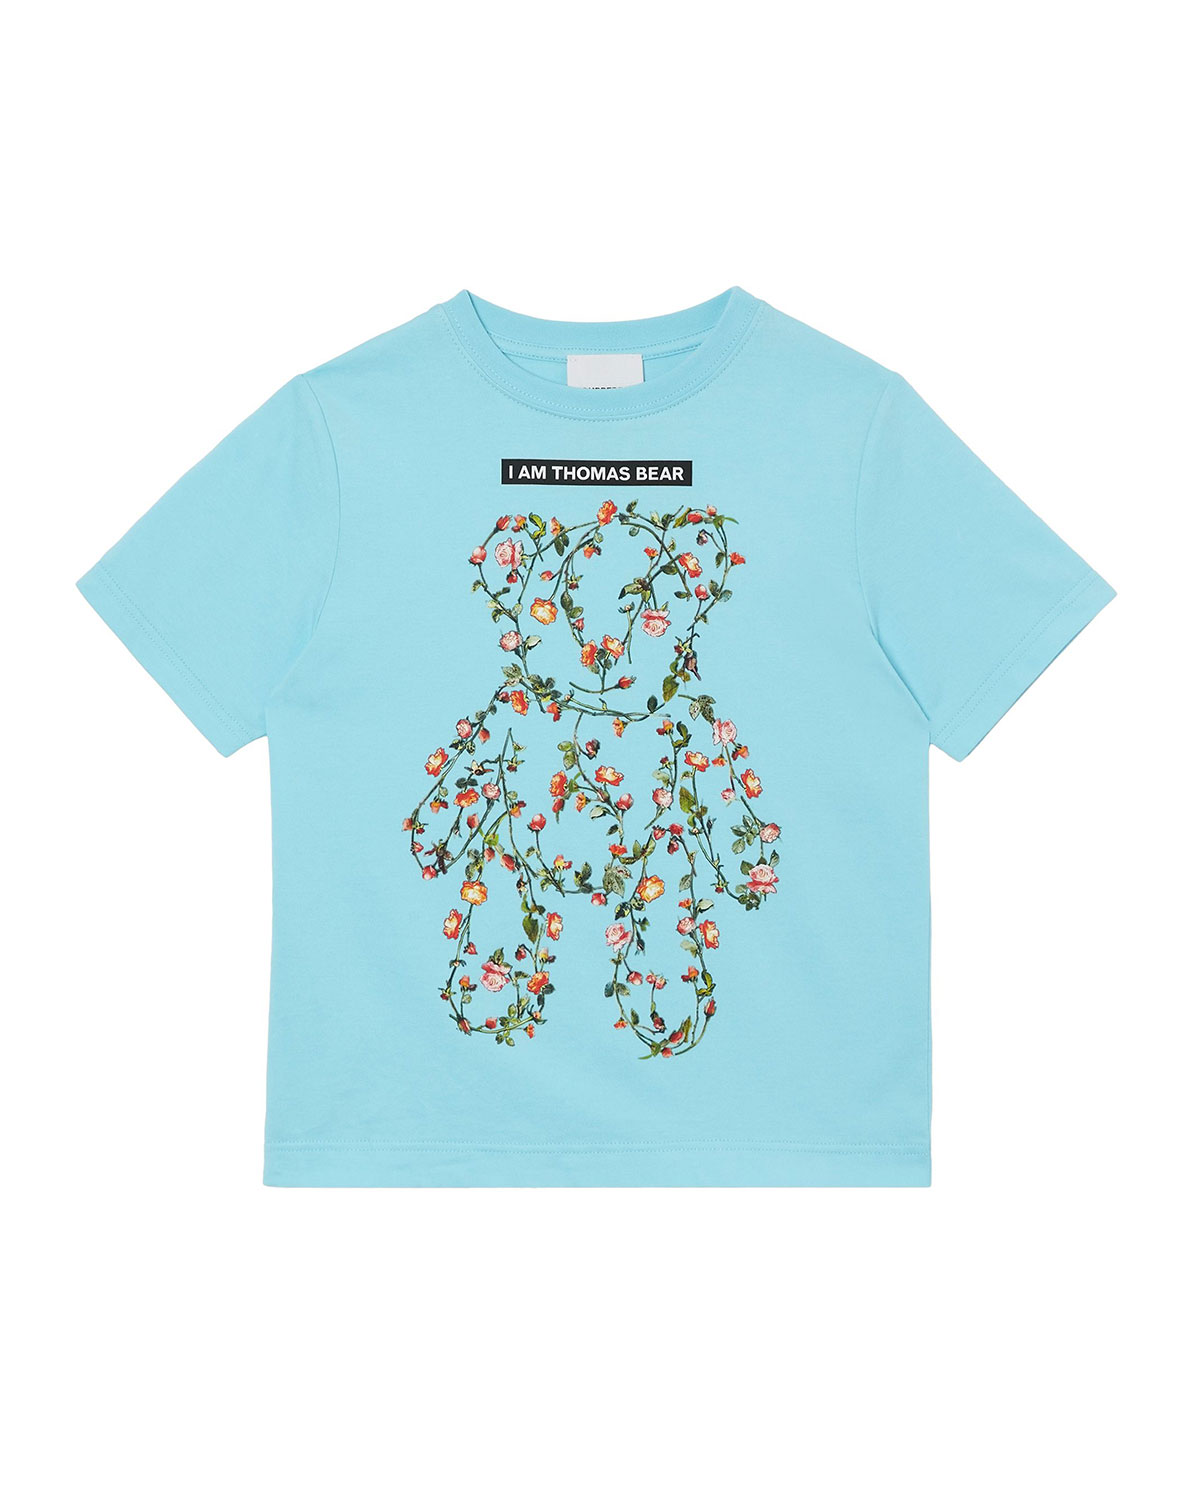 Burberry GIRL'S FLORAL BEAR GRAPHIC TEE